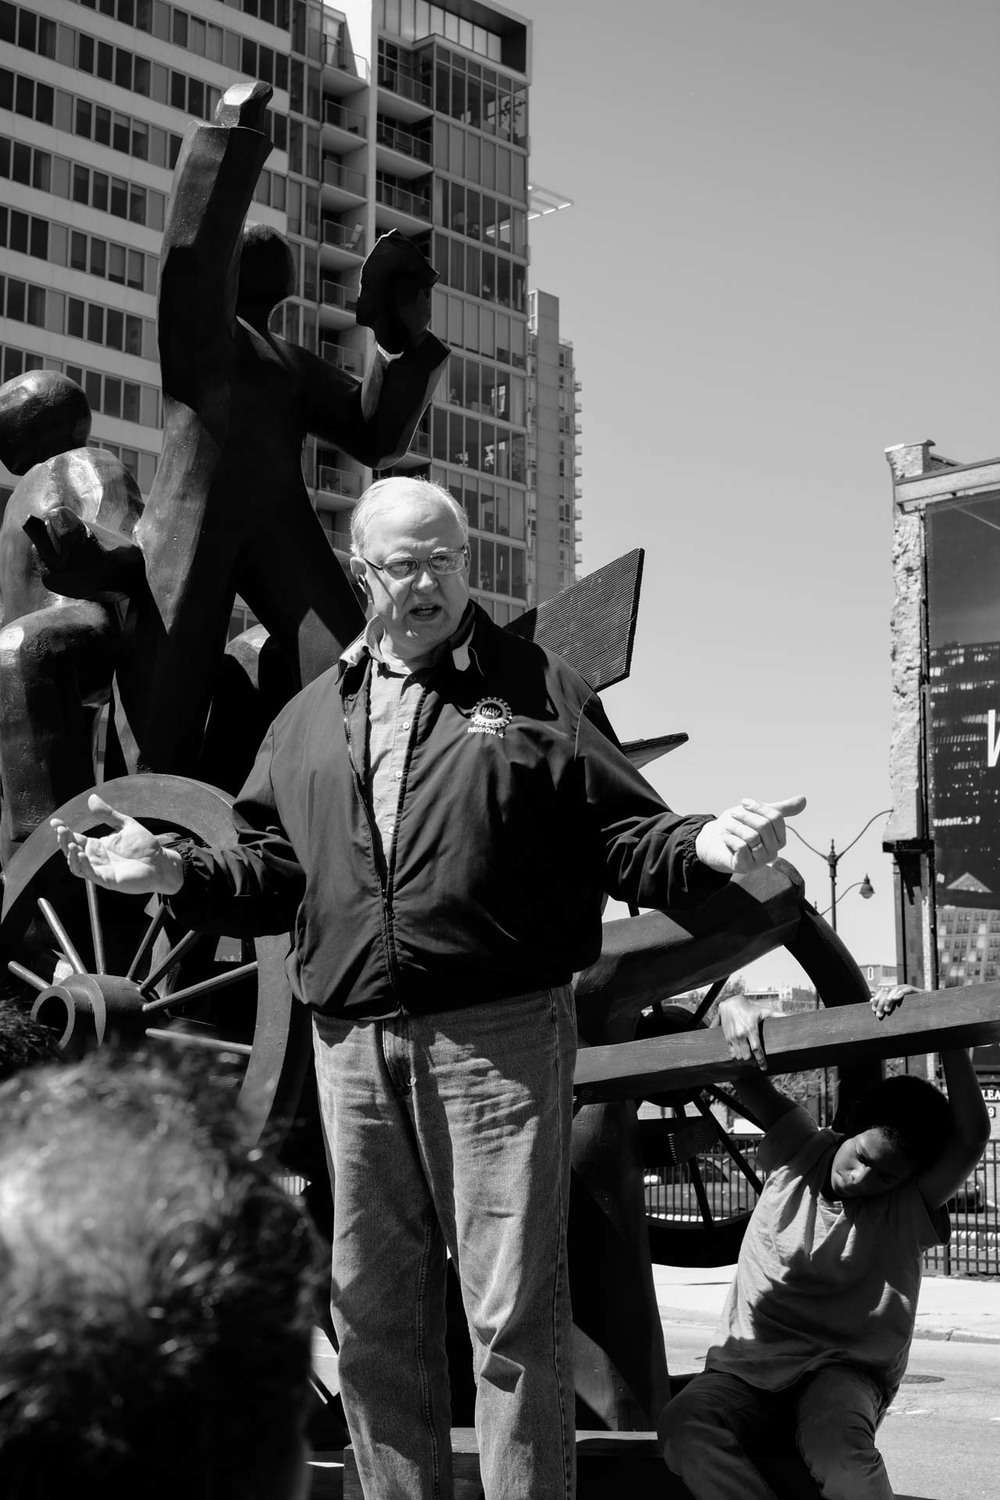 Rev. Tim Yeager told the crowd the short history of the Haymarket Square and its importance in the labor movements around the world while one the delegate's son hanging to the monument.  He spoke very passionately about the 8-Hour Workday movement when communist party members from all over the United States gathered at the Haymarket Square in Chicago that day.